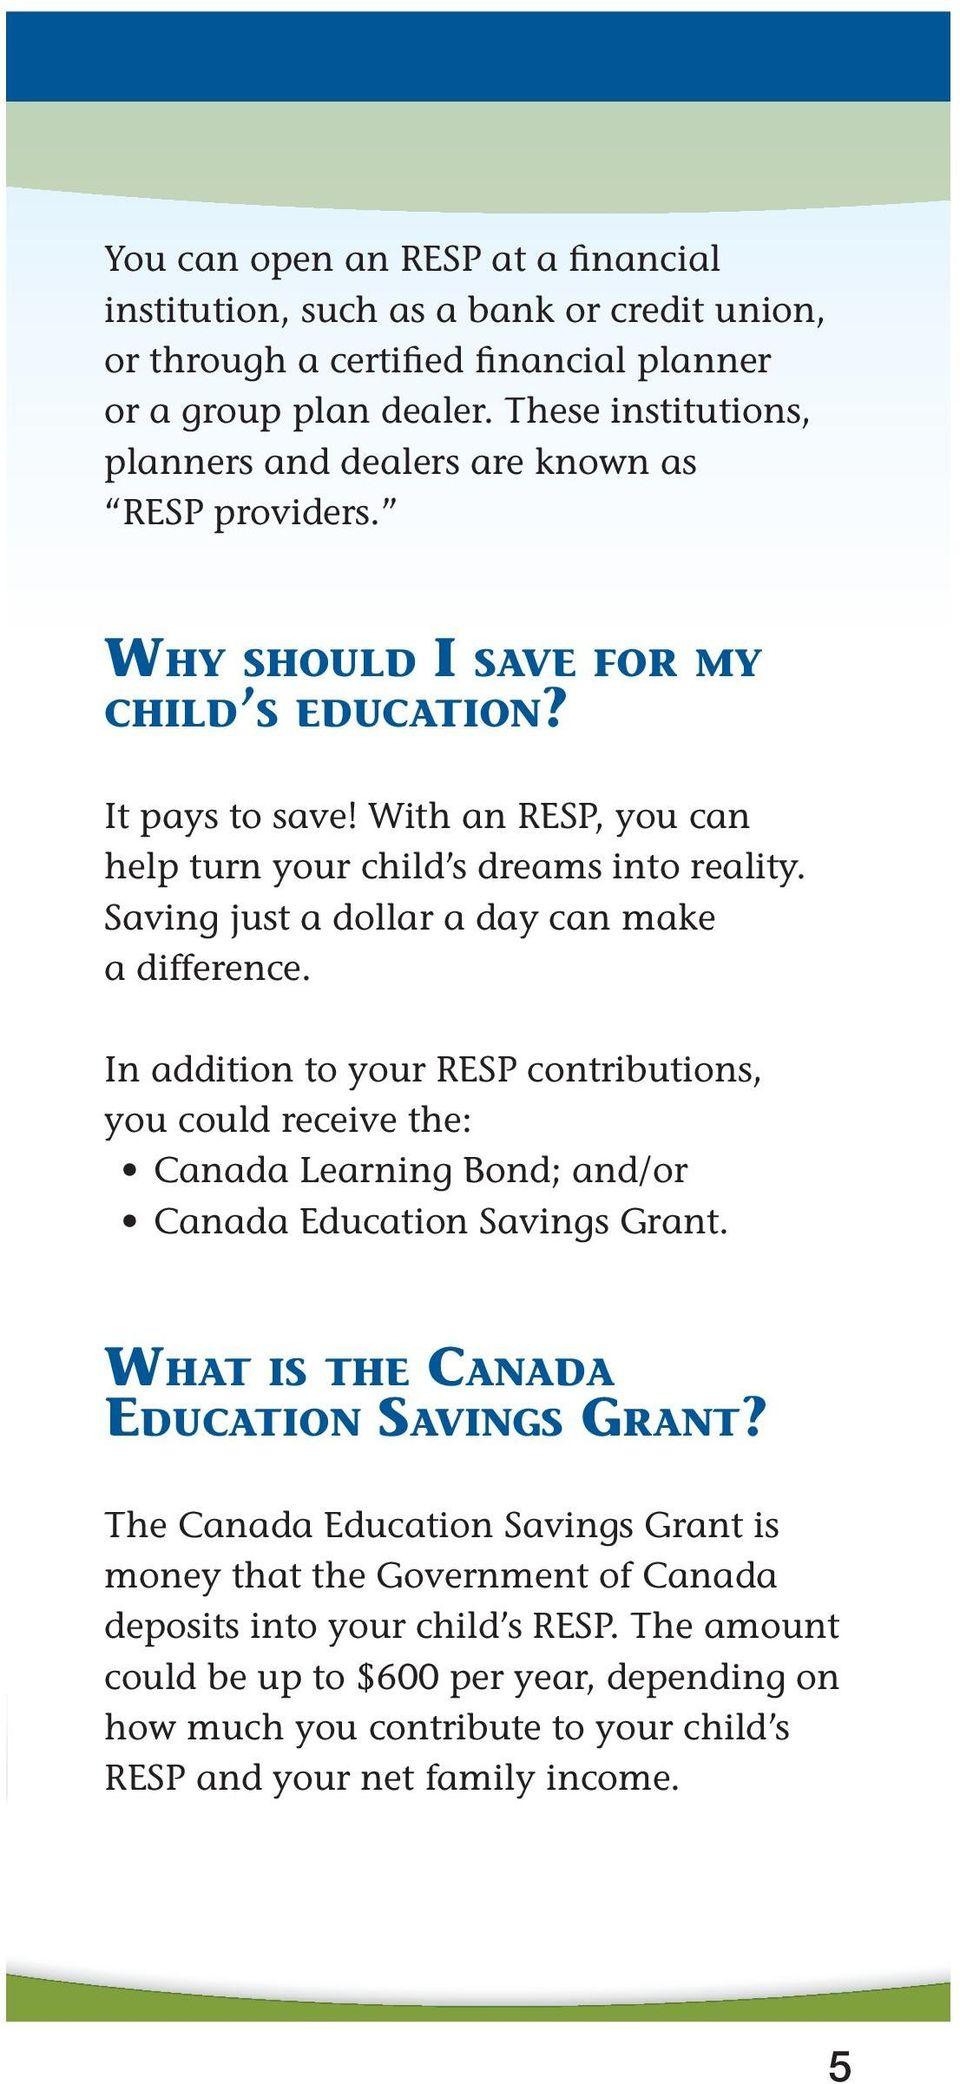 Saving just a dollar a day can make a difference. In addition to your RESP contributions, you could receive the: Canada Learning Bond; and/or Canada Education Savings Grant.